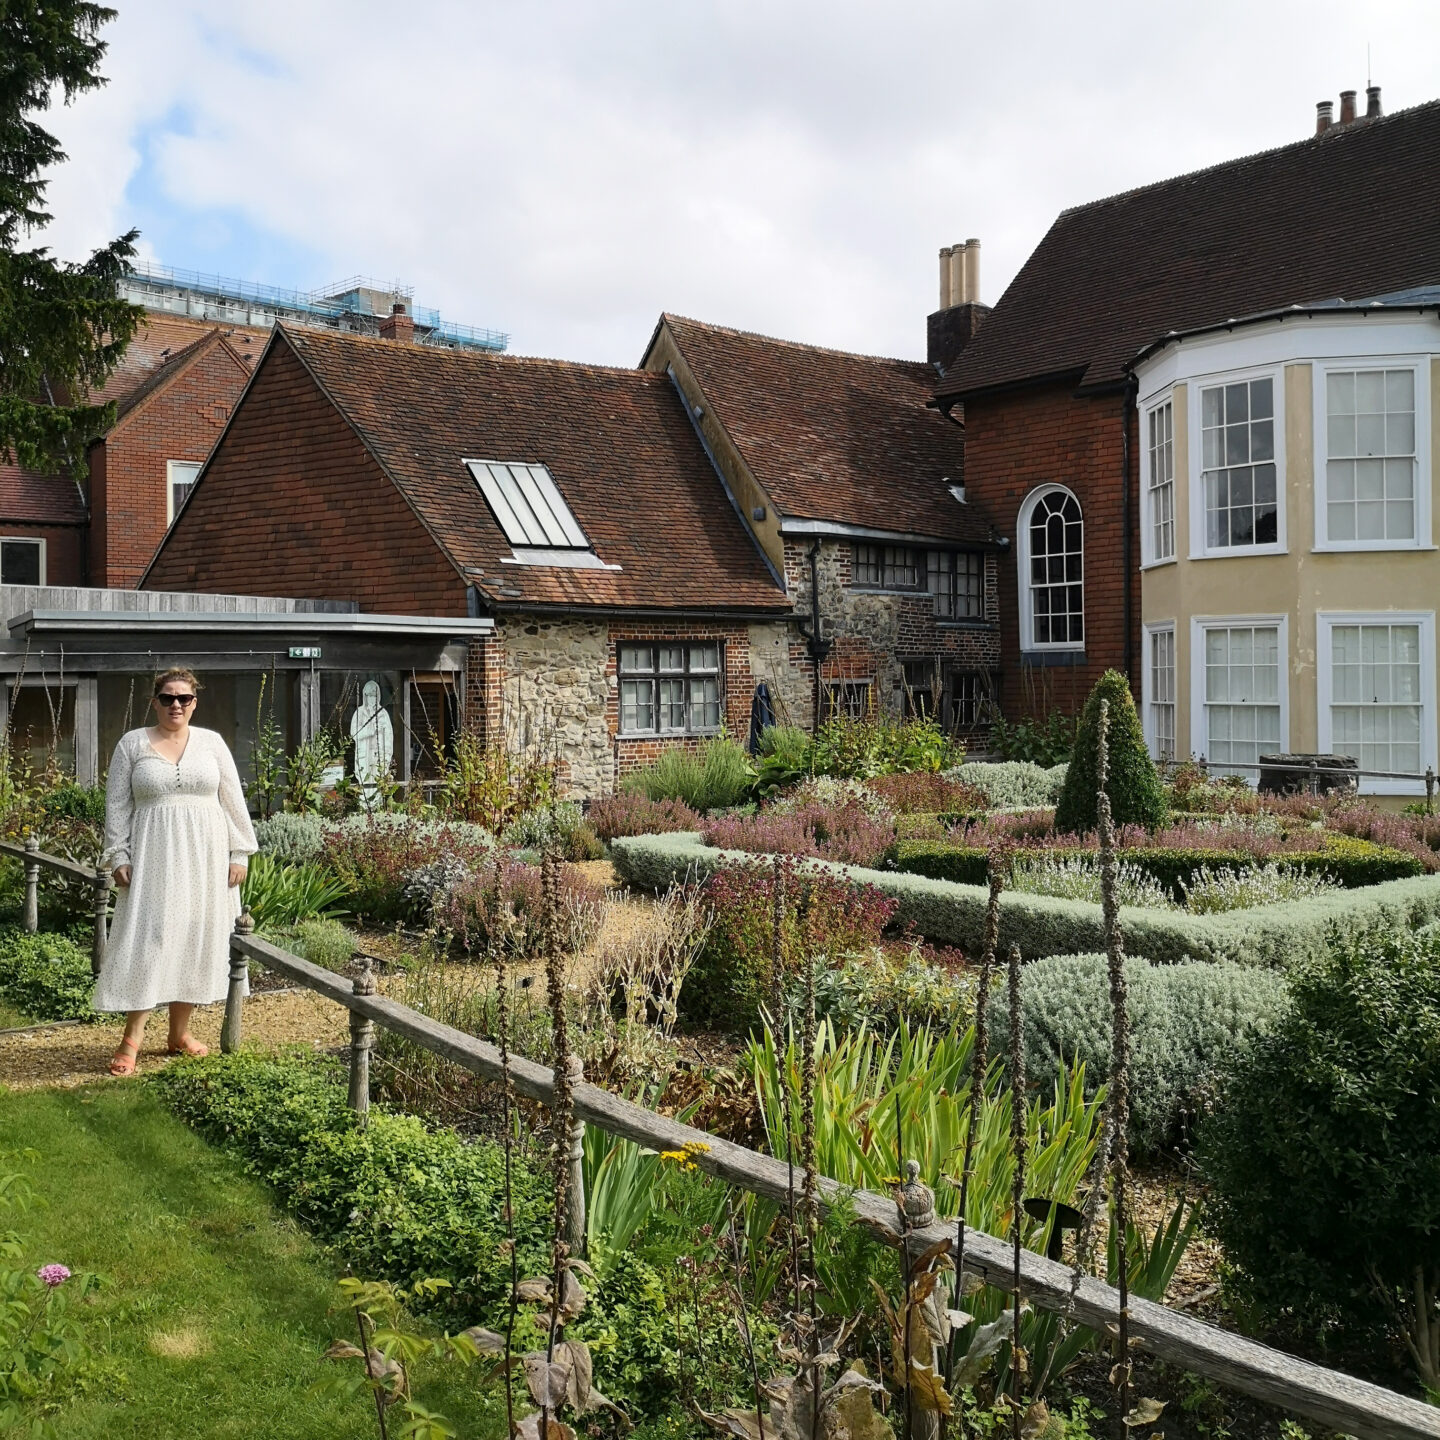 Visit Southampton, #oursouthampton, #visitsouthampton, Southampton, Hampshire, Family Holiday, Day Out, Mini Break, South Coast, British Holiday, the Frenchie Mummy, City Review, Family Friendly, The Old Town, Tudor House & Garden